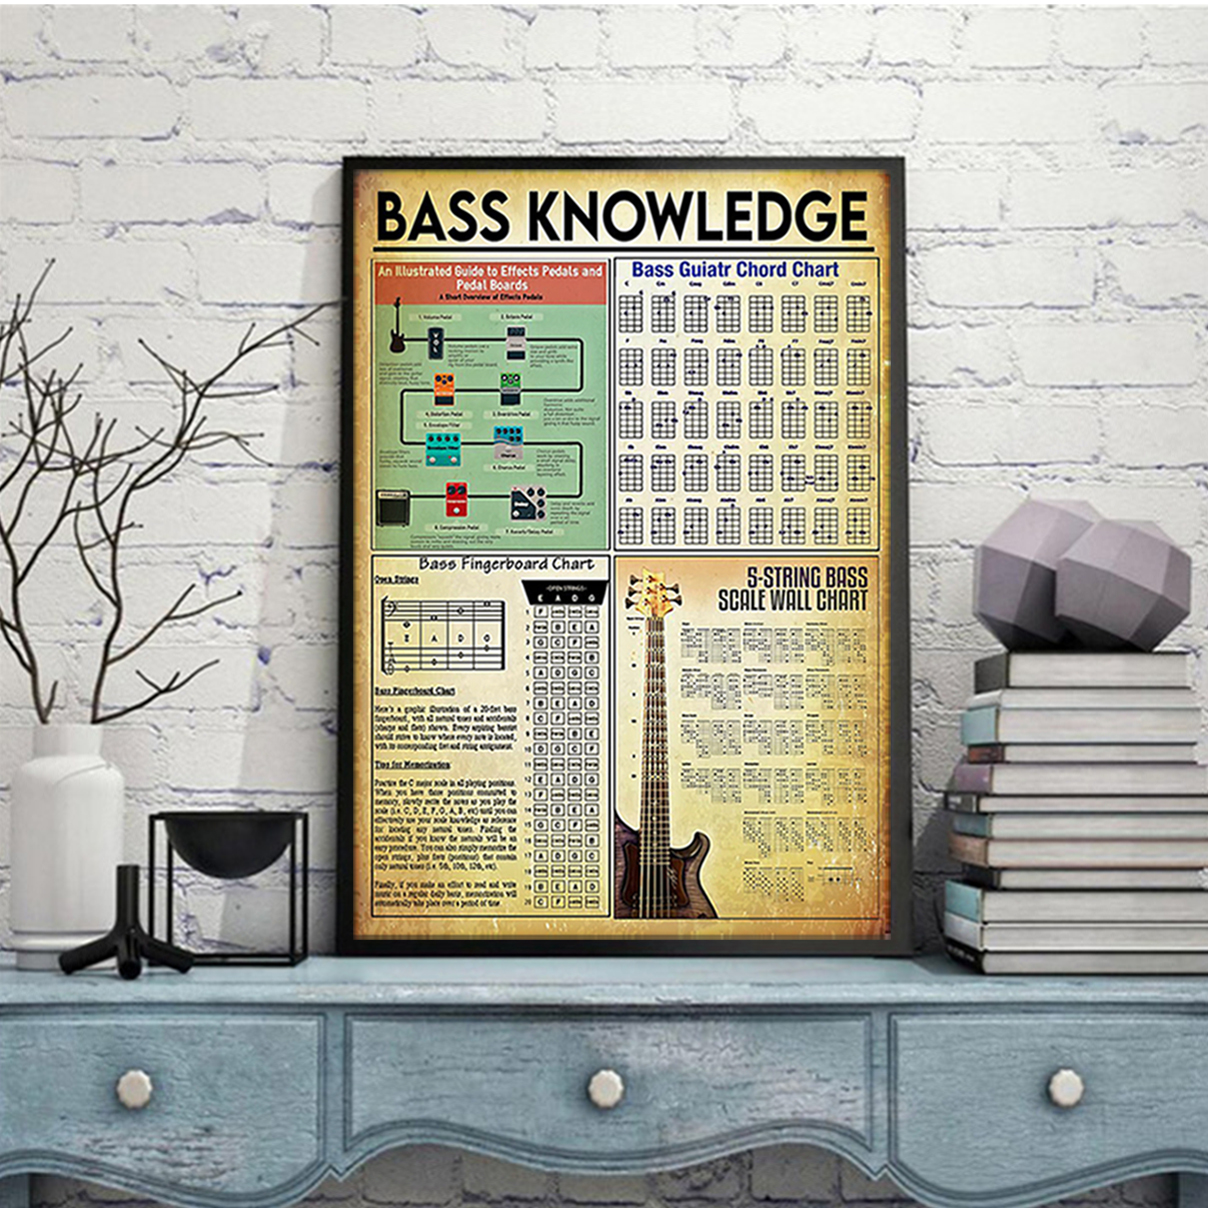 Bass guitar knowledge poster A2